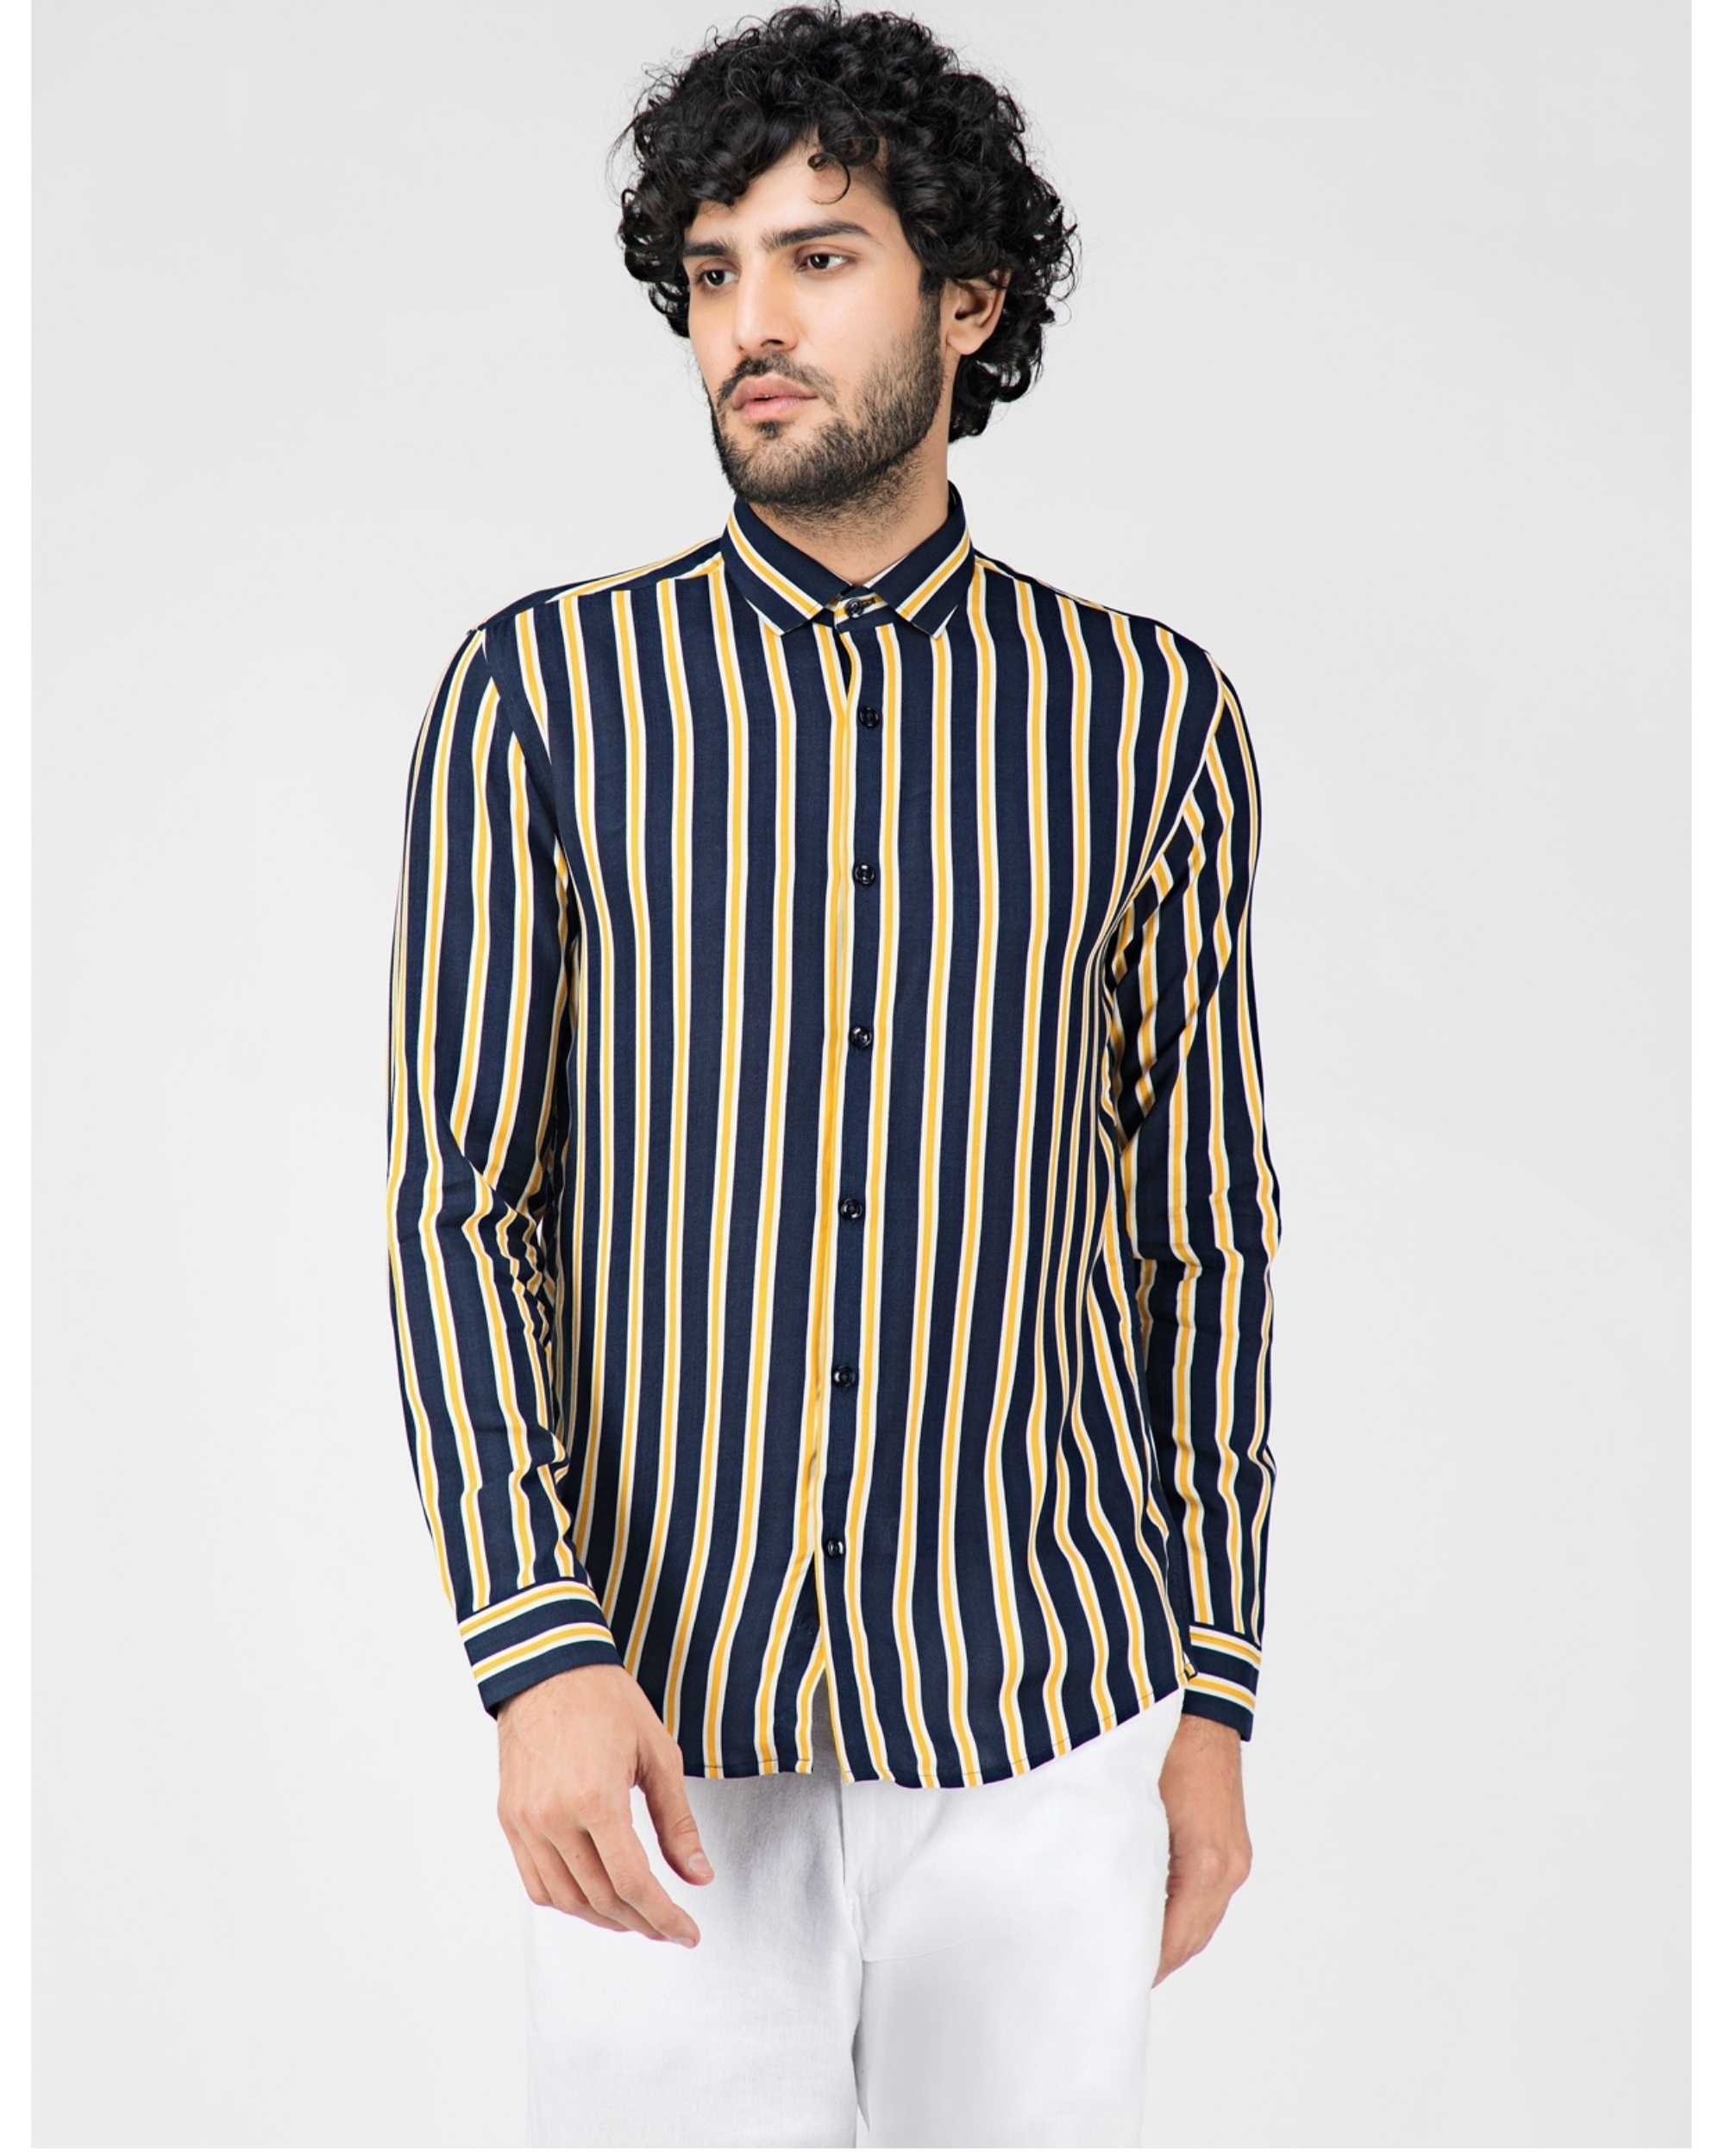 Yellow and blue striped casual shirt